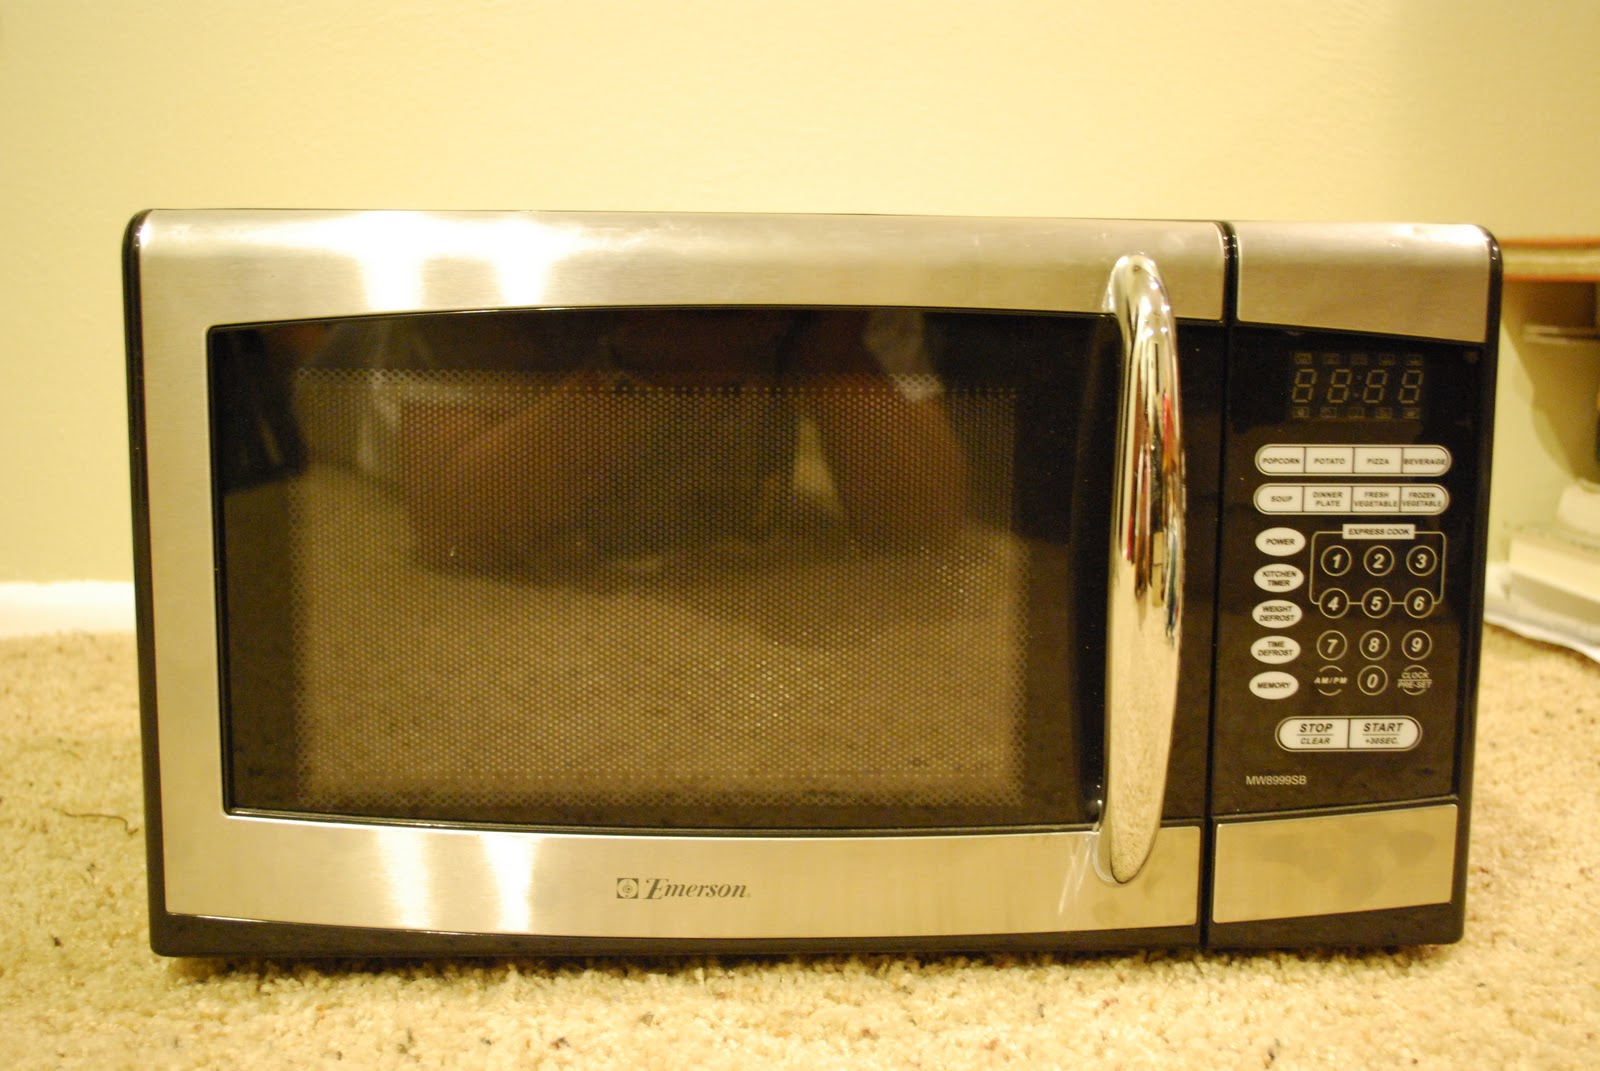 Emerson Black And Silver Microwave 30